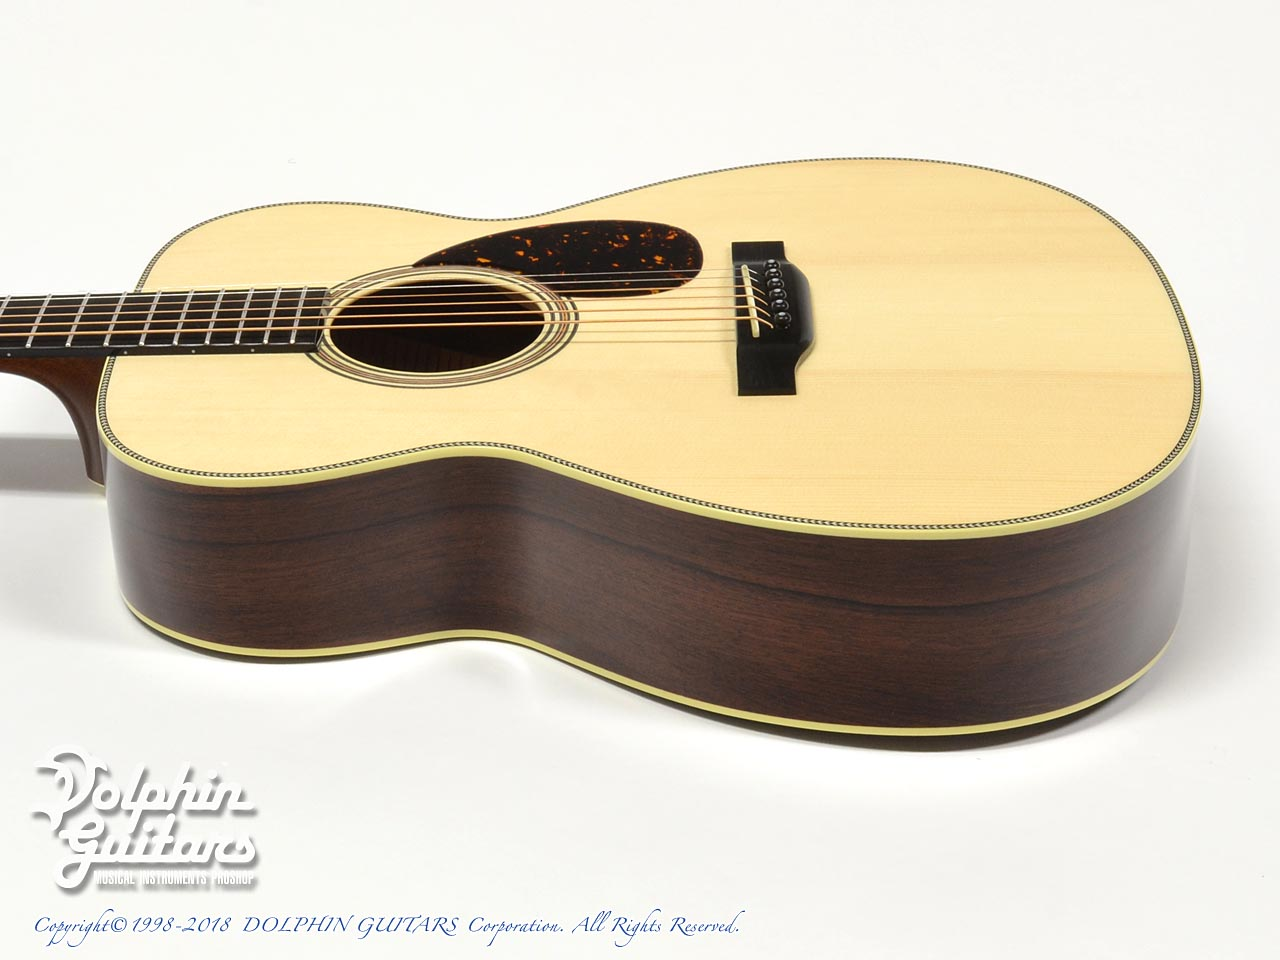 SWITCH: SCOM-2H A-MR (Adirondack Spruce & Madagascar Rosewood) (2)